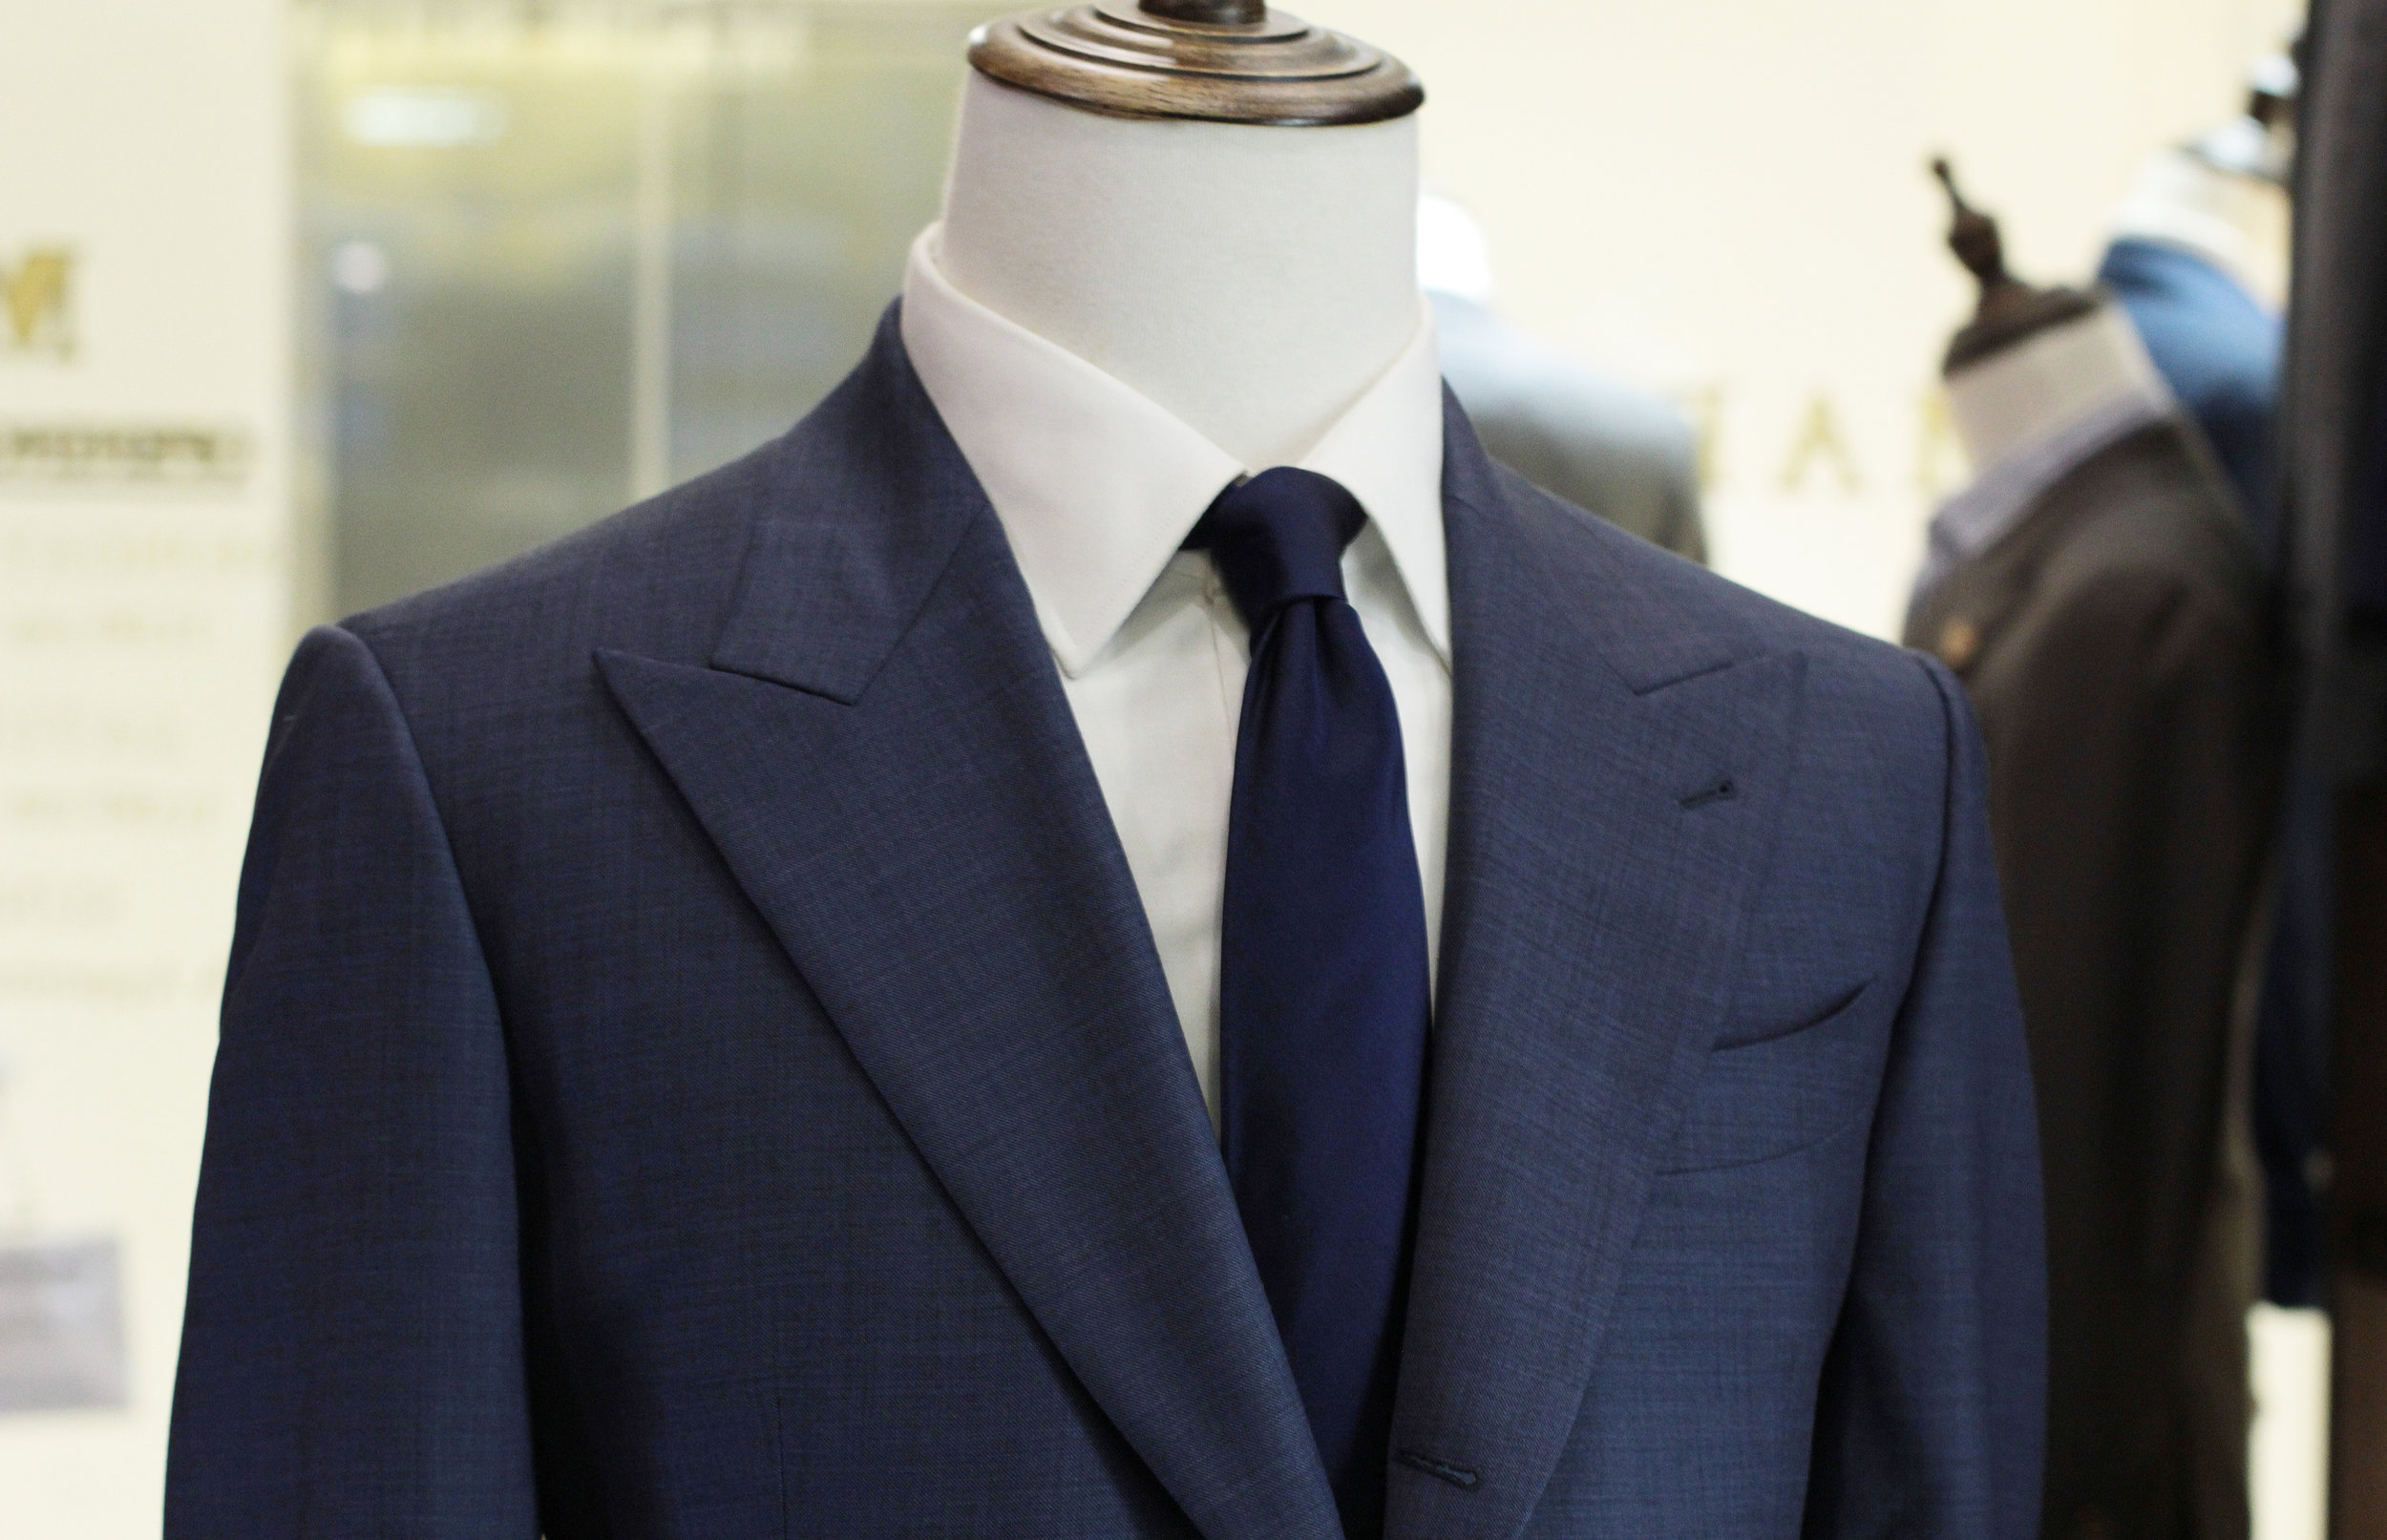 Thor 568A   Made Suits   Tailor made suits   Singapore Suits peak lapel.JPG